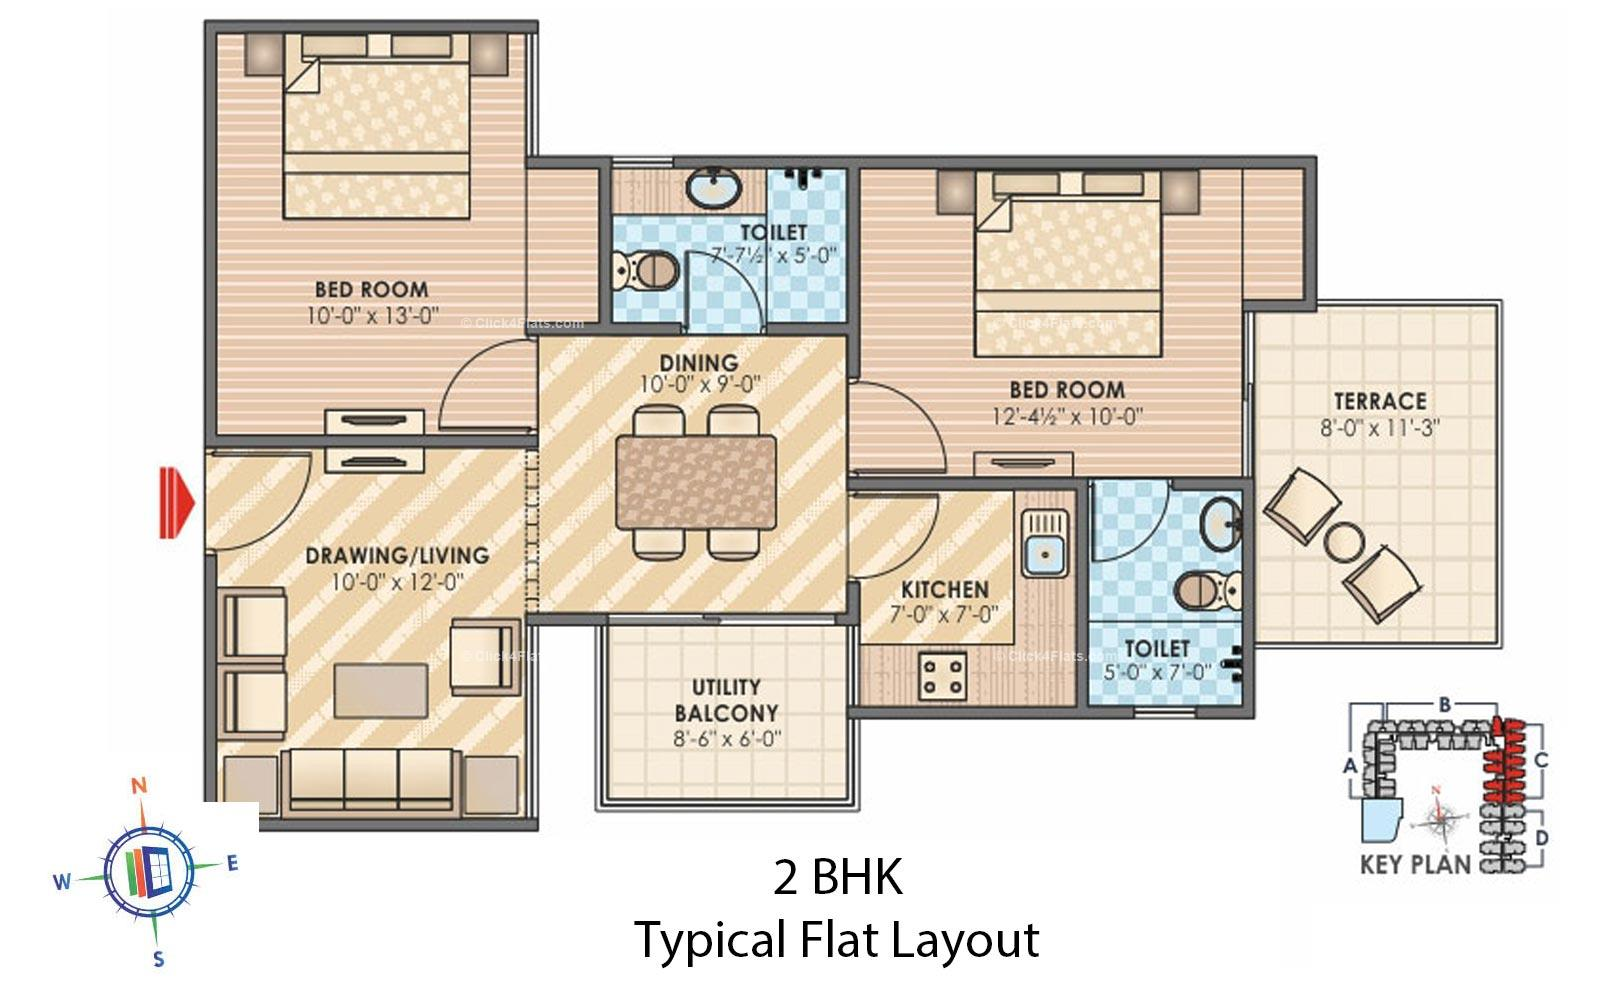 Sky Lounges 2 BHK